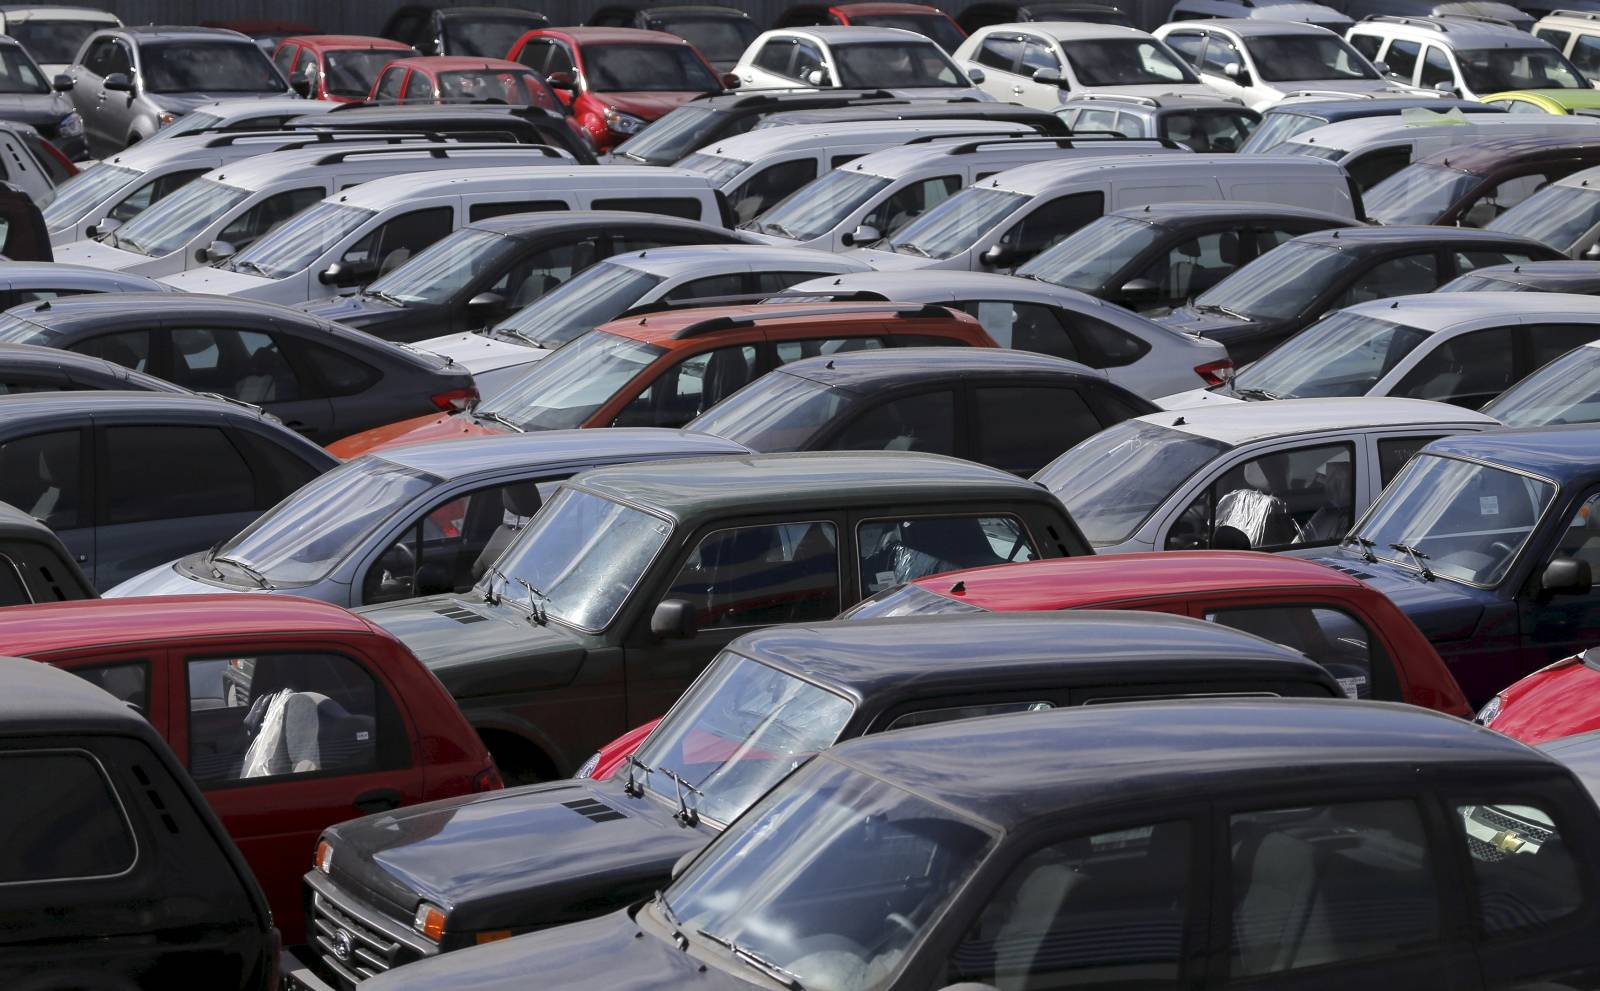 FILE PHOTO: Vehicles, including Lada cars produced by the Russian automobile maker Avtovaz, are parked on the premises of the 'AvtoGermes' dealership in Moscow